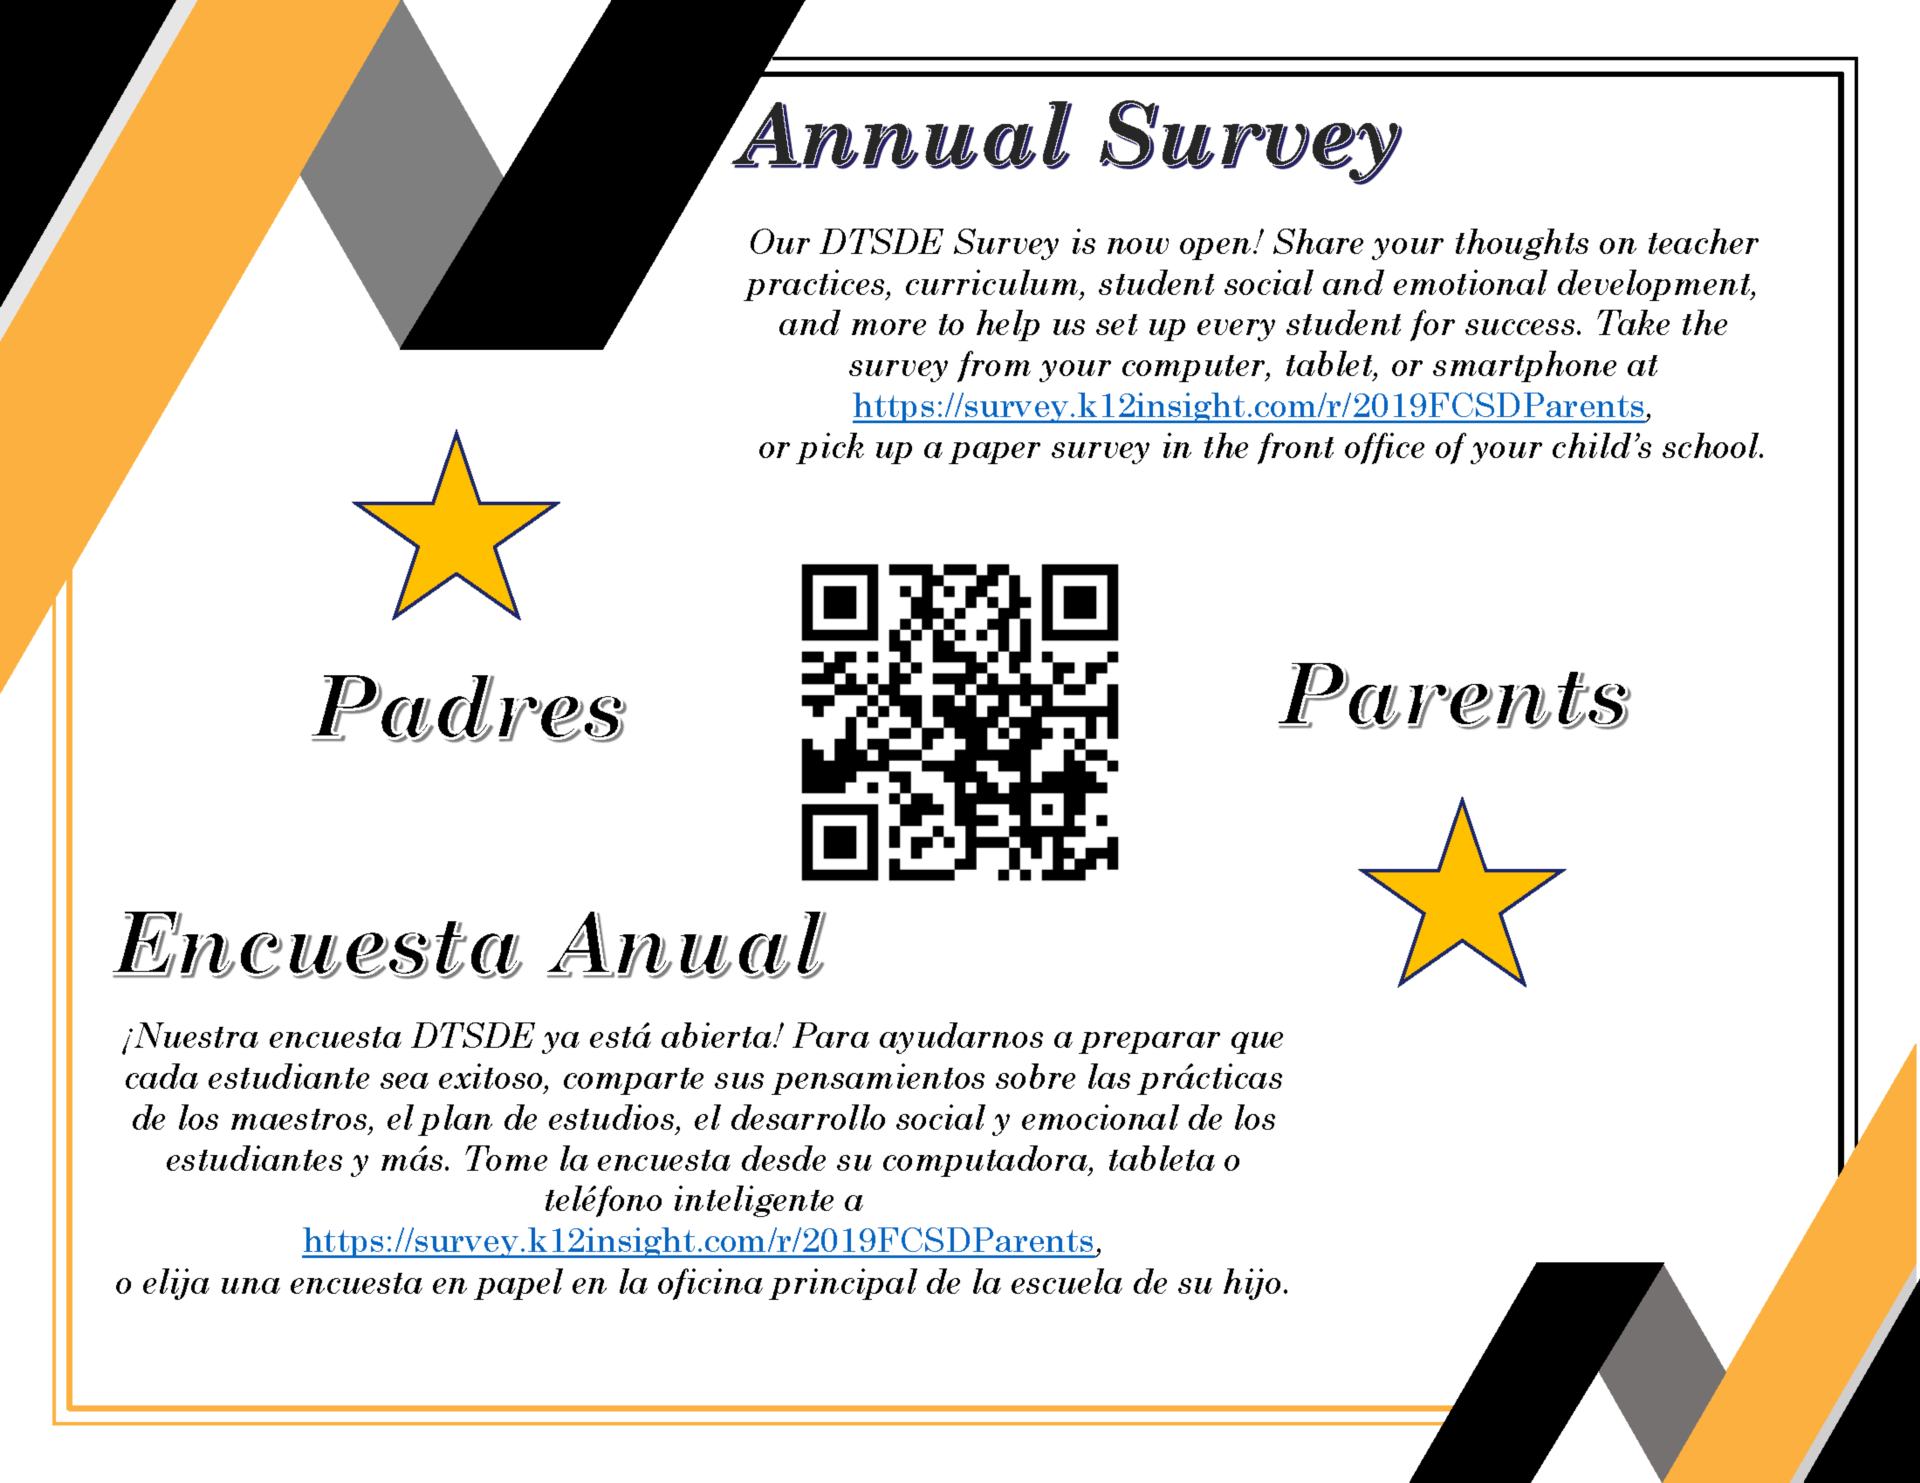 Flyer and QR code for Annual Survey